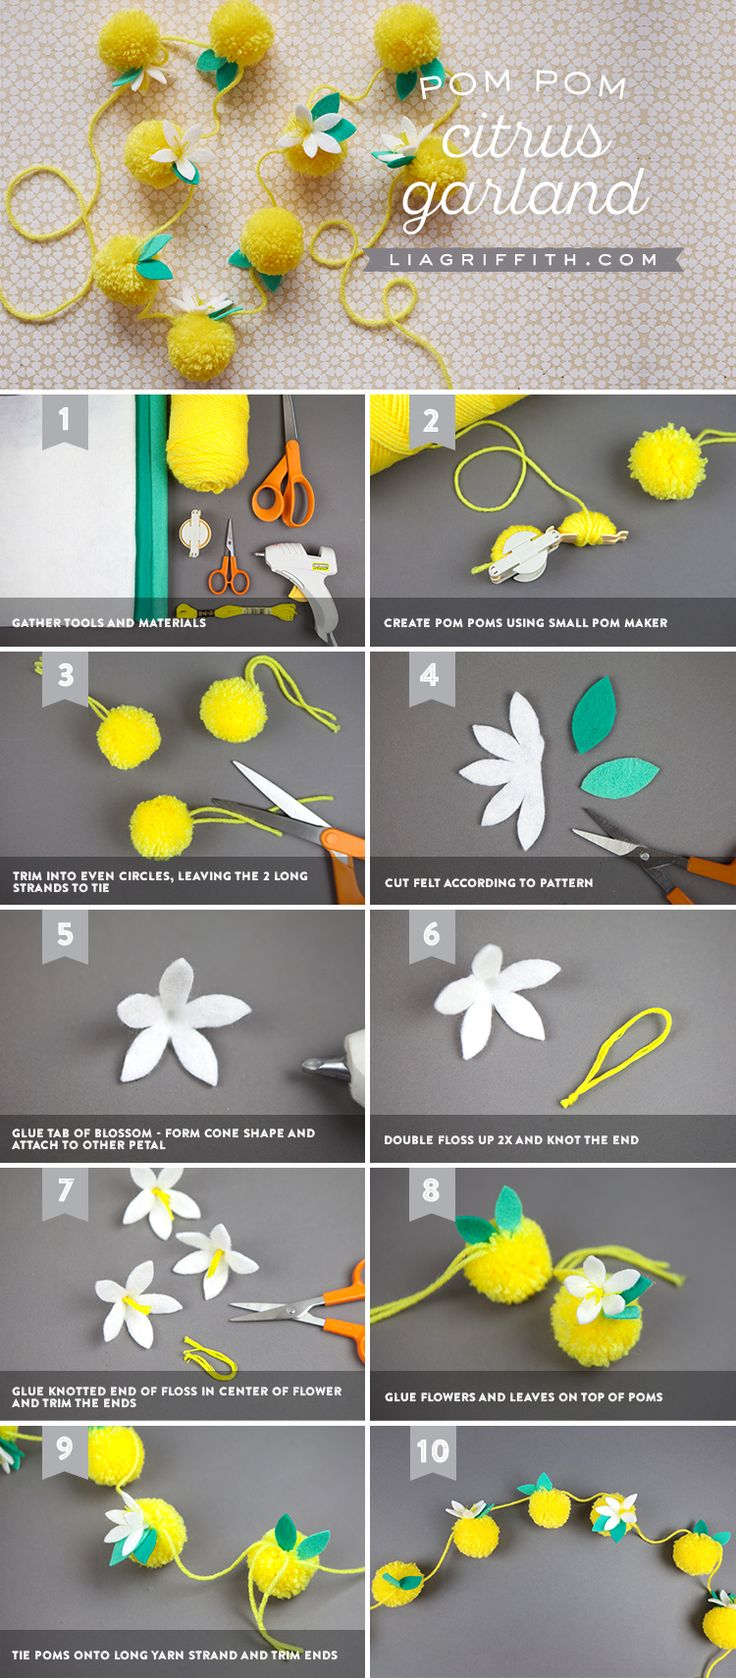 This simple project from Lia Griffith is easy and fun to make! Click in to learn how to DIY the lemon pom pom garland backdrop. We think it would be perfect for a spring kid's birthday party!